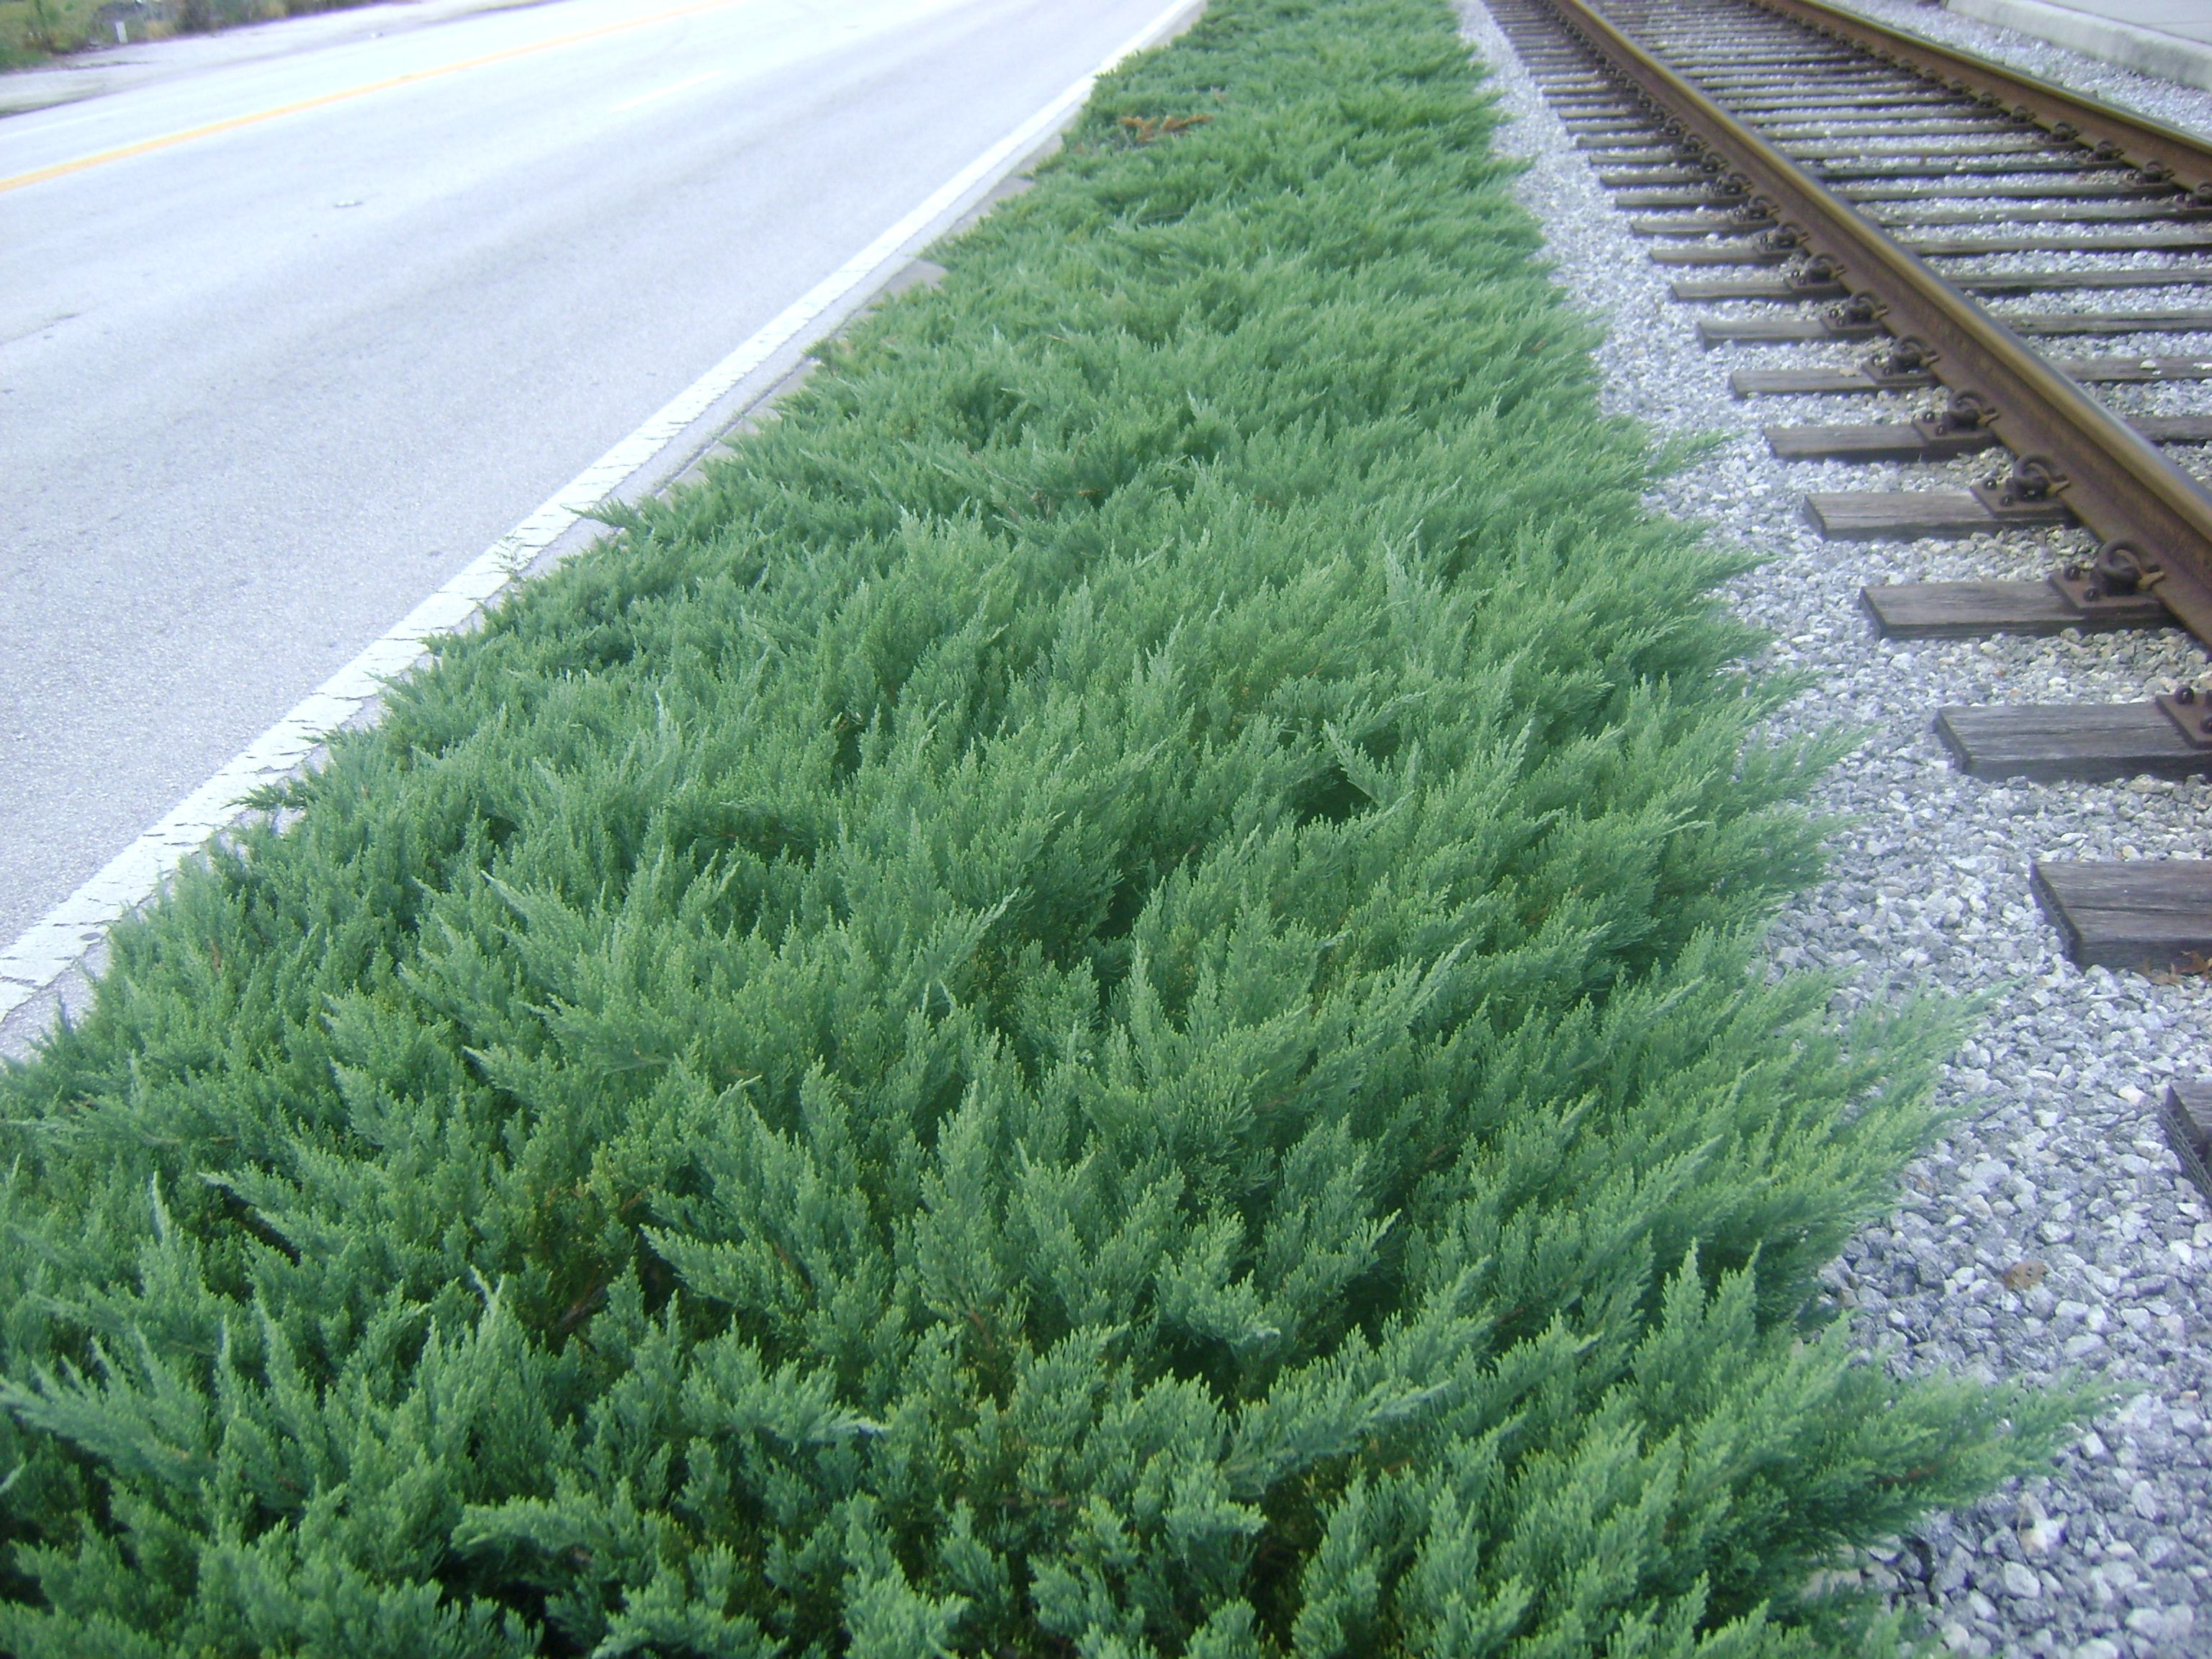 florida ground cover plants | Click to Enlarge Parsoni Juniper - but I like this turned so that it all grows in the same direction